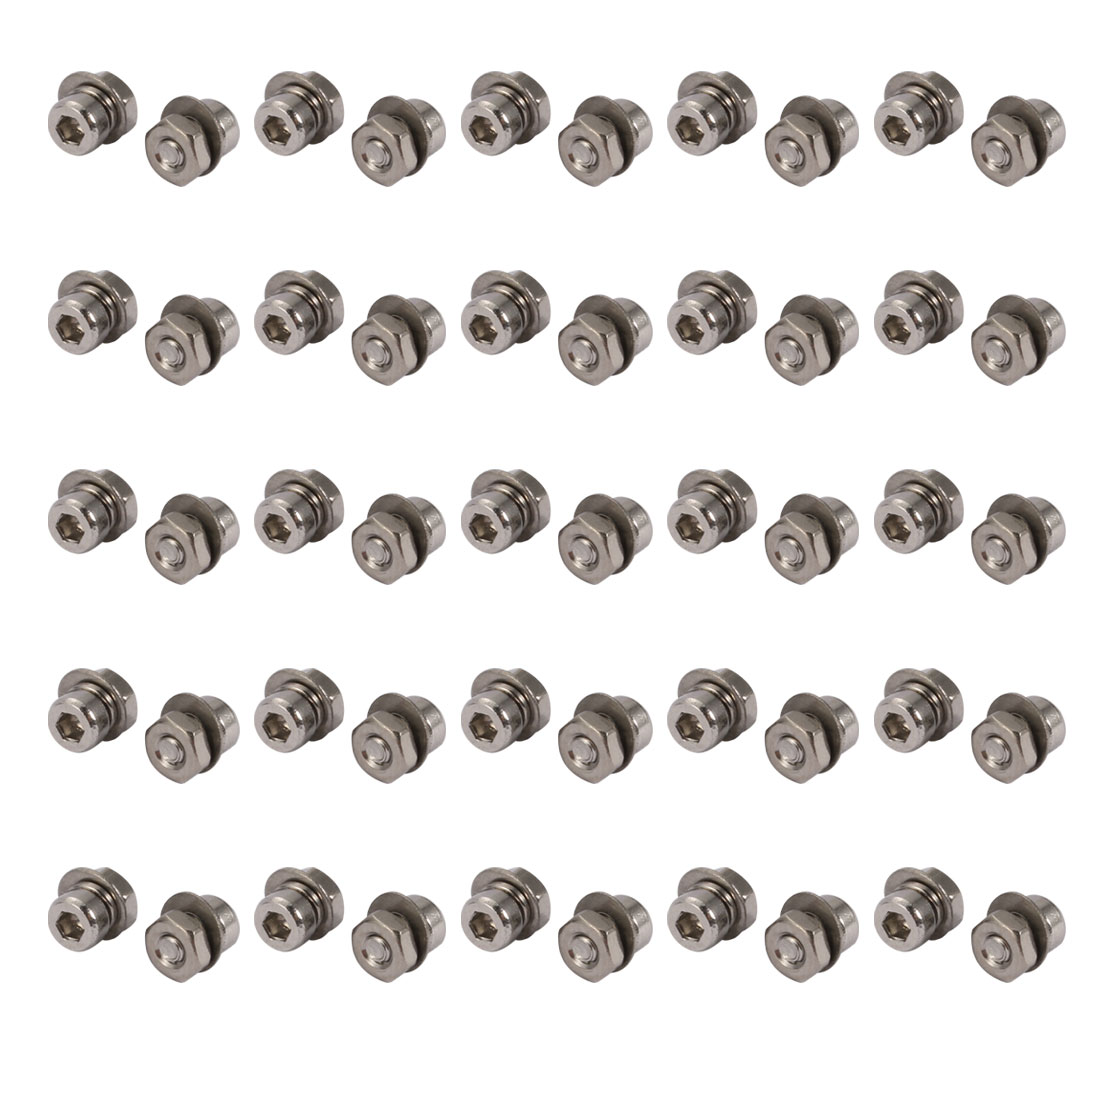 50pcs M2x3mm 304 Stainless Steel Knurled Hex Socket Head Bolts w Nut Washer